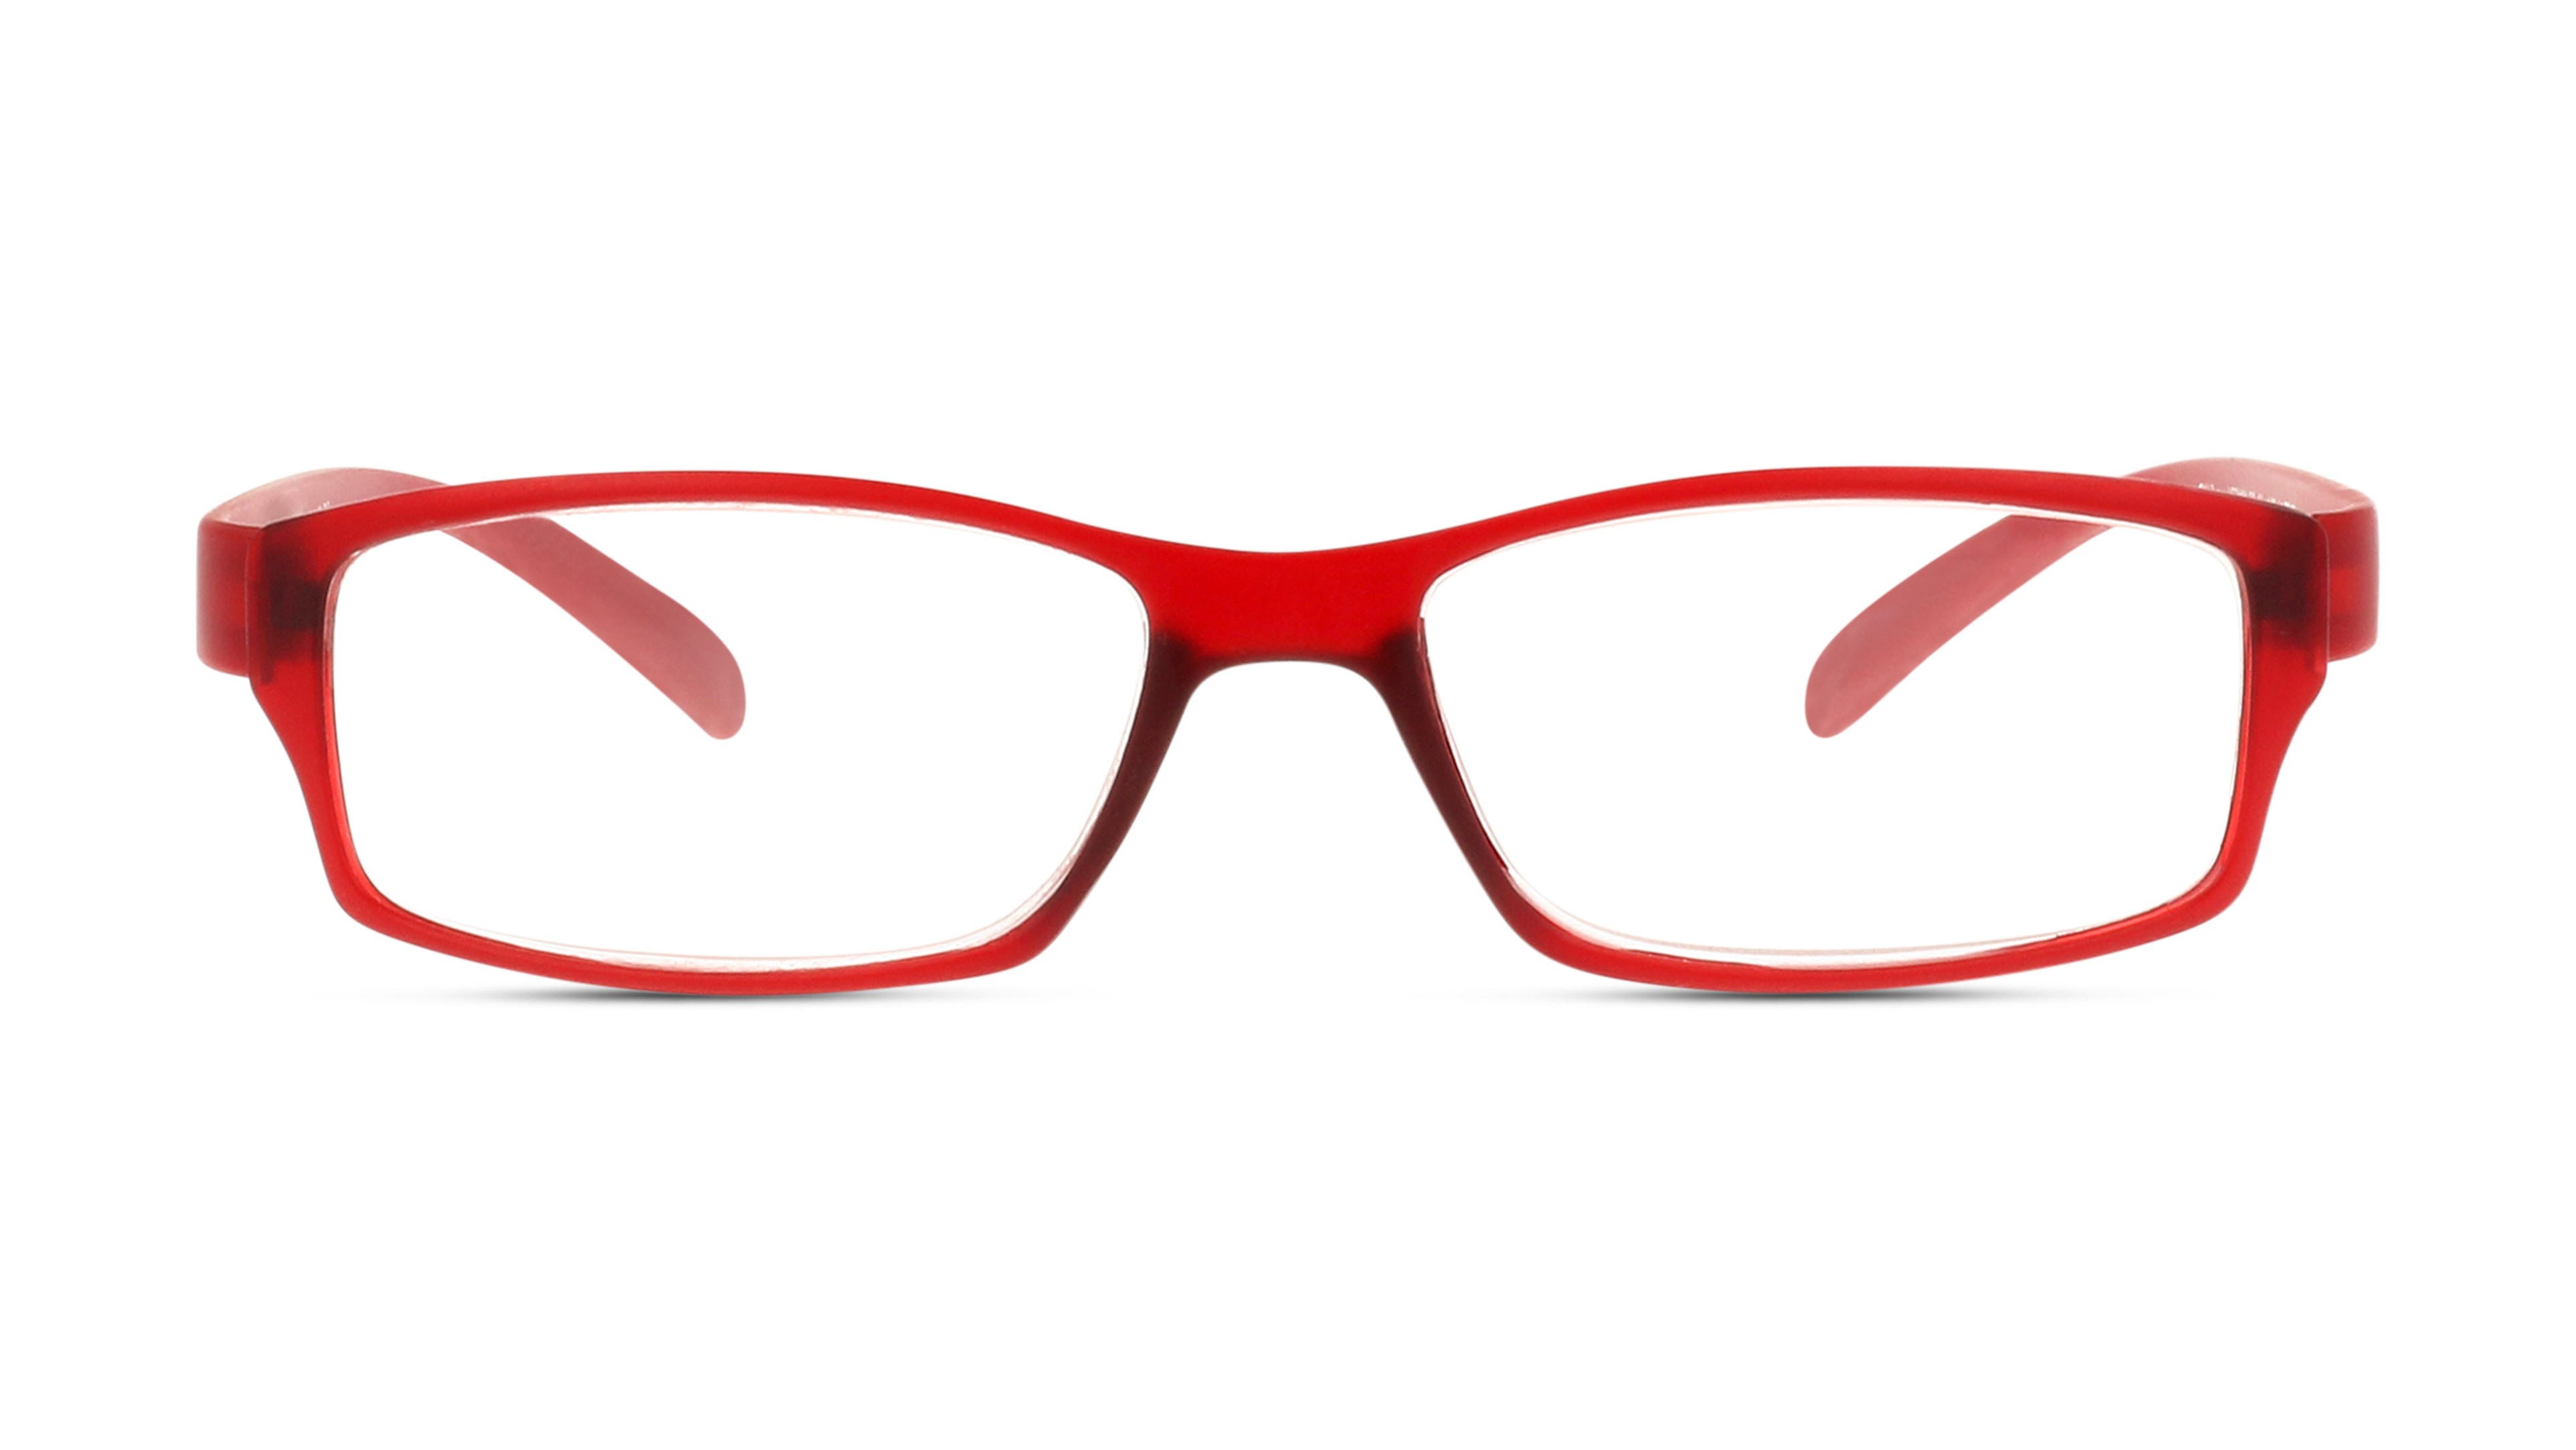 8719154524103-front-01-gv-library-hfdm01-Eyewear-red-red